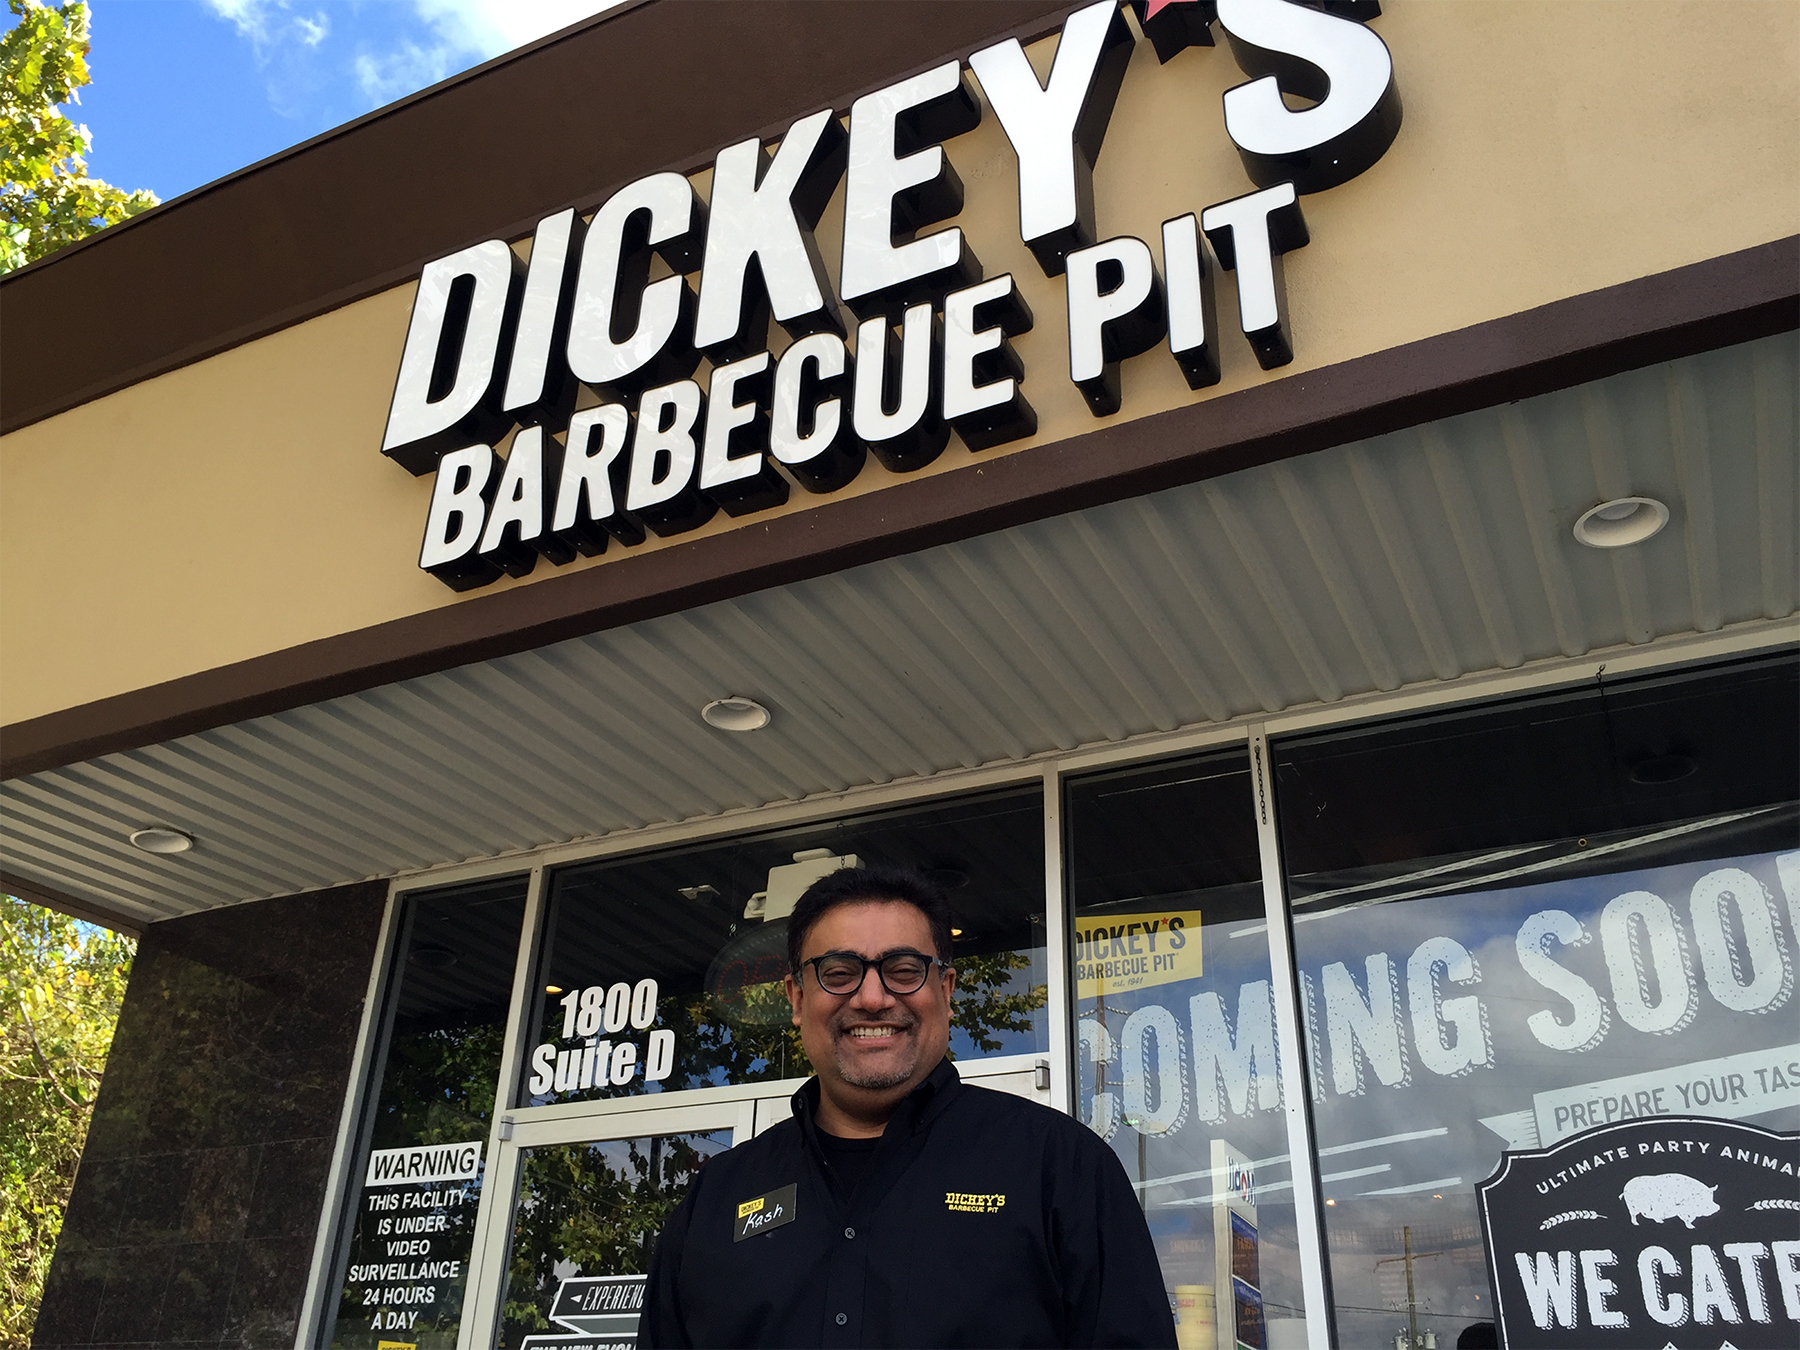 Dickey's Barbecue Pit Opens Their Doors and Fires Up Their Pit in Kingwood, TX